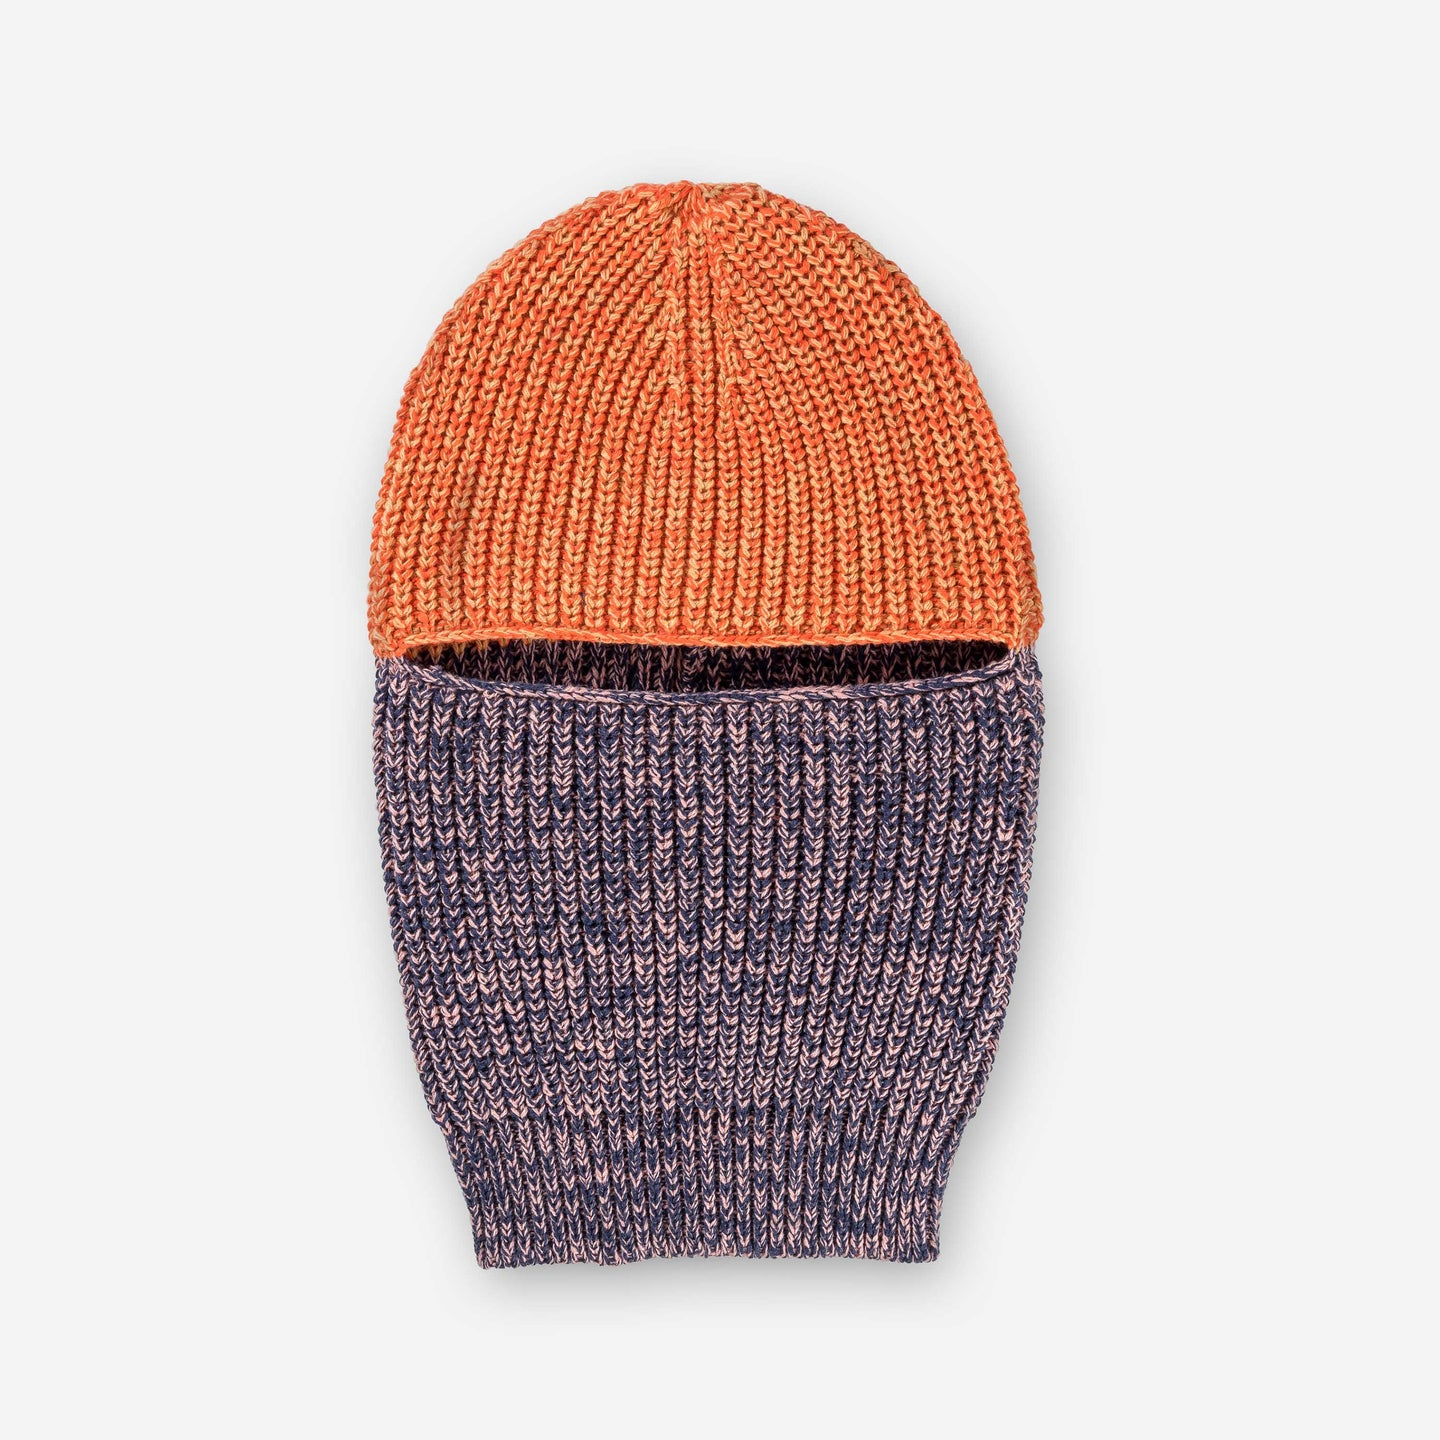 Ribbed Balaclava Colorblock Ski Mask